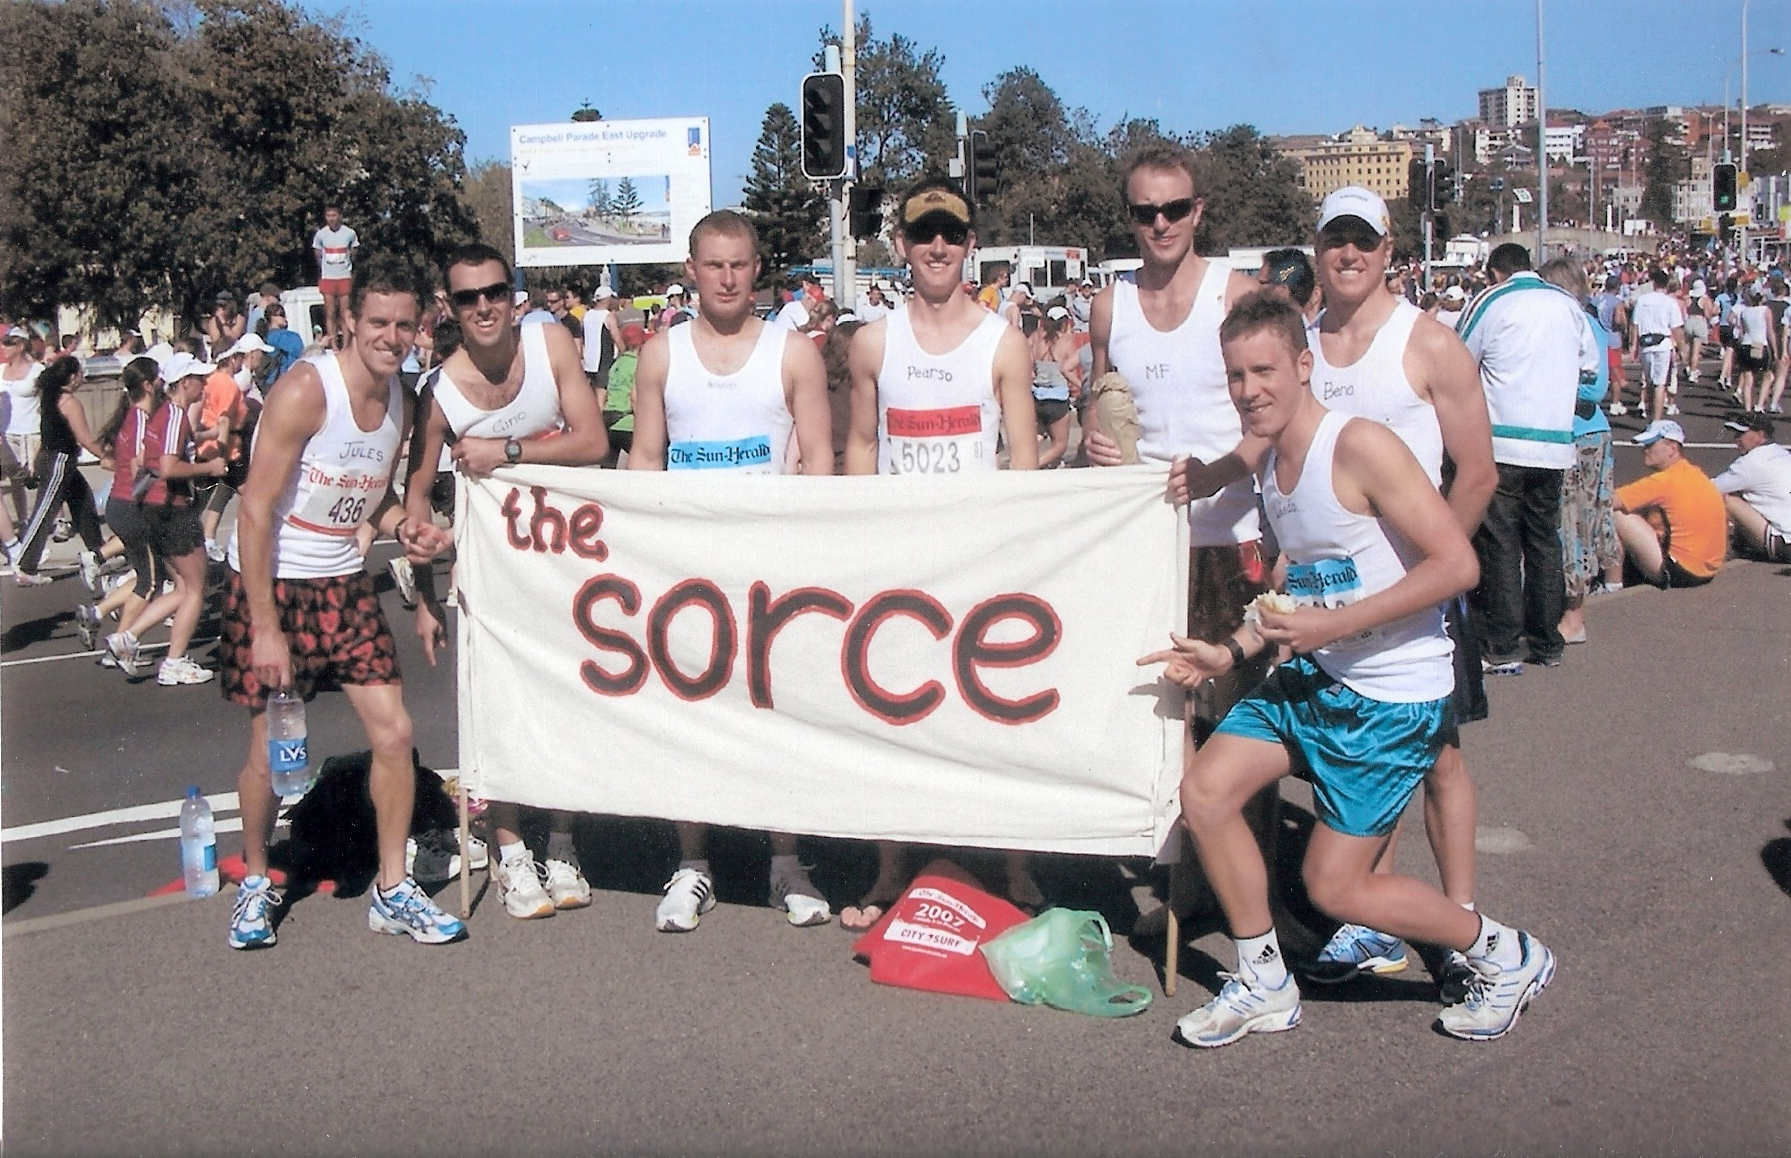 The SORCE at the 2007 City to Surf